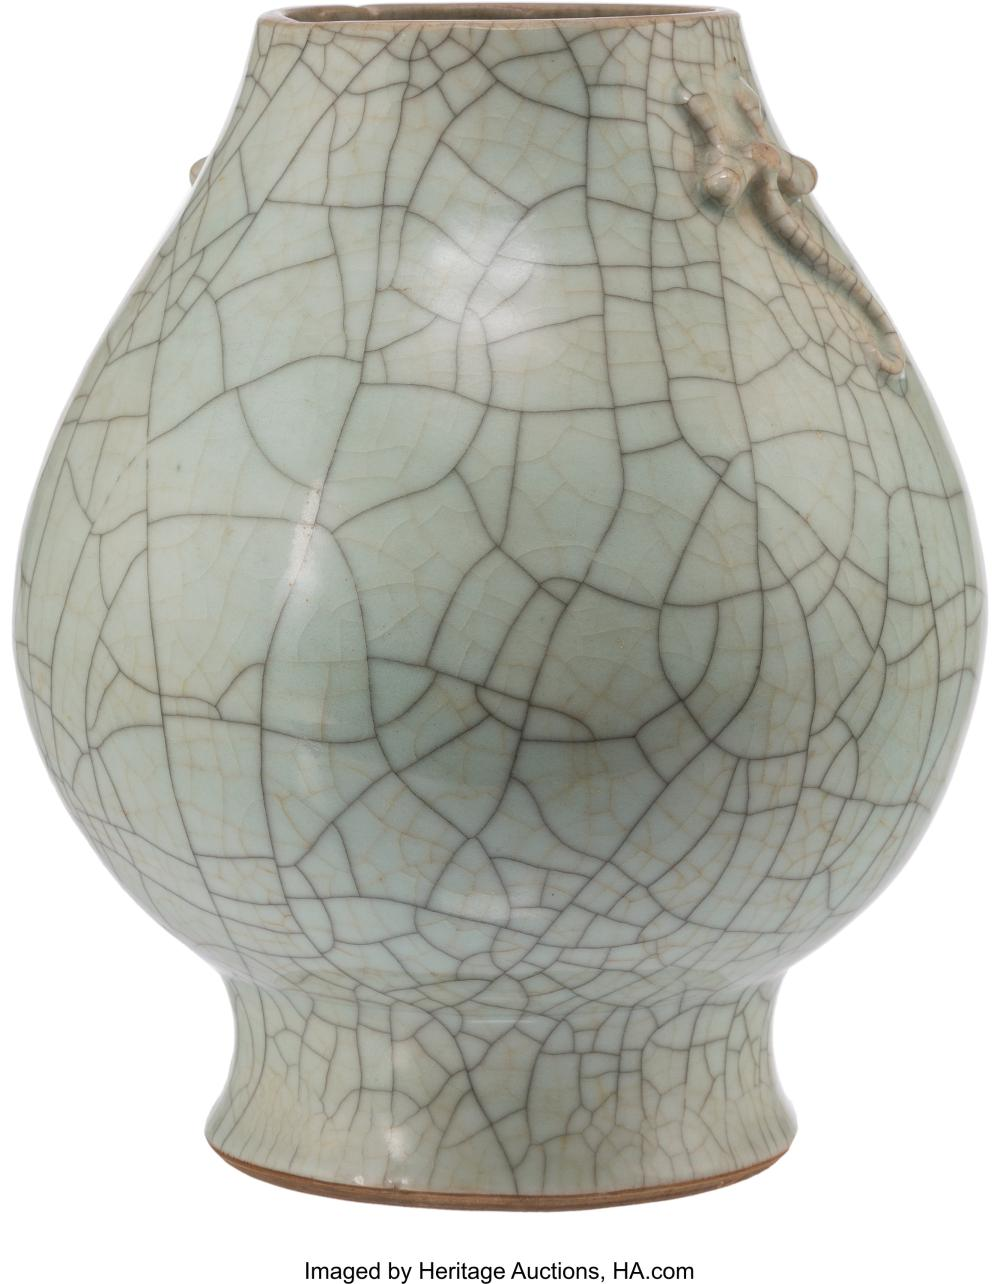 Lot 21310: A Chinese Porcelain Ge Ware Vase, 18th century 10-3/4 x 8-1/2 x 8-1/2 inches (27